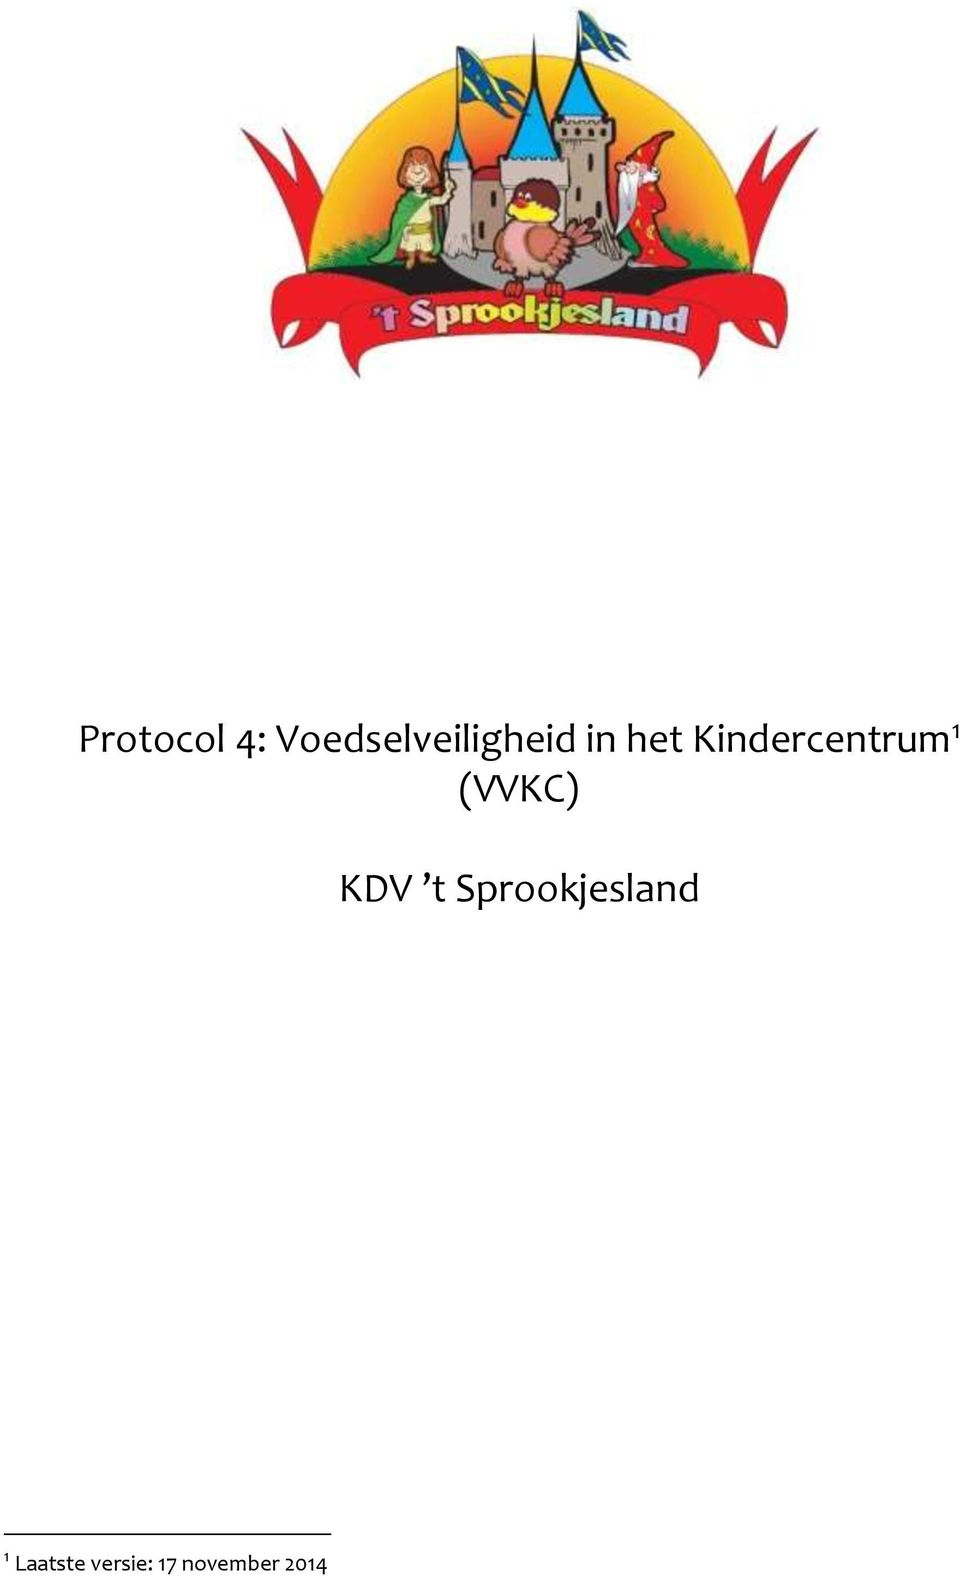 Kindercentrum 1 (VVKC) KDV t